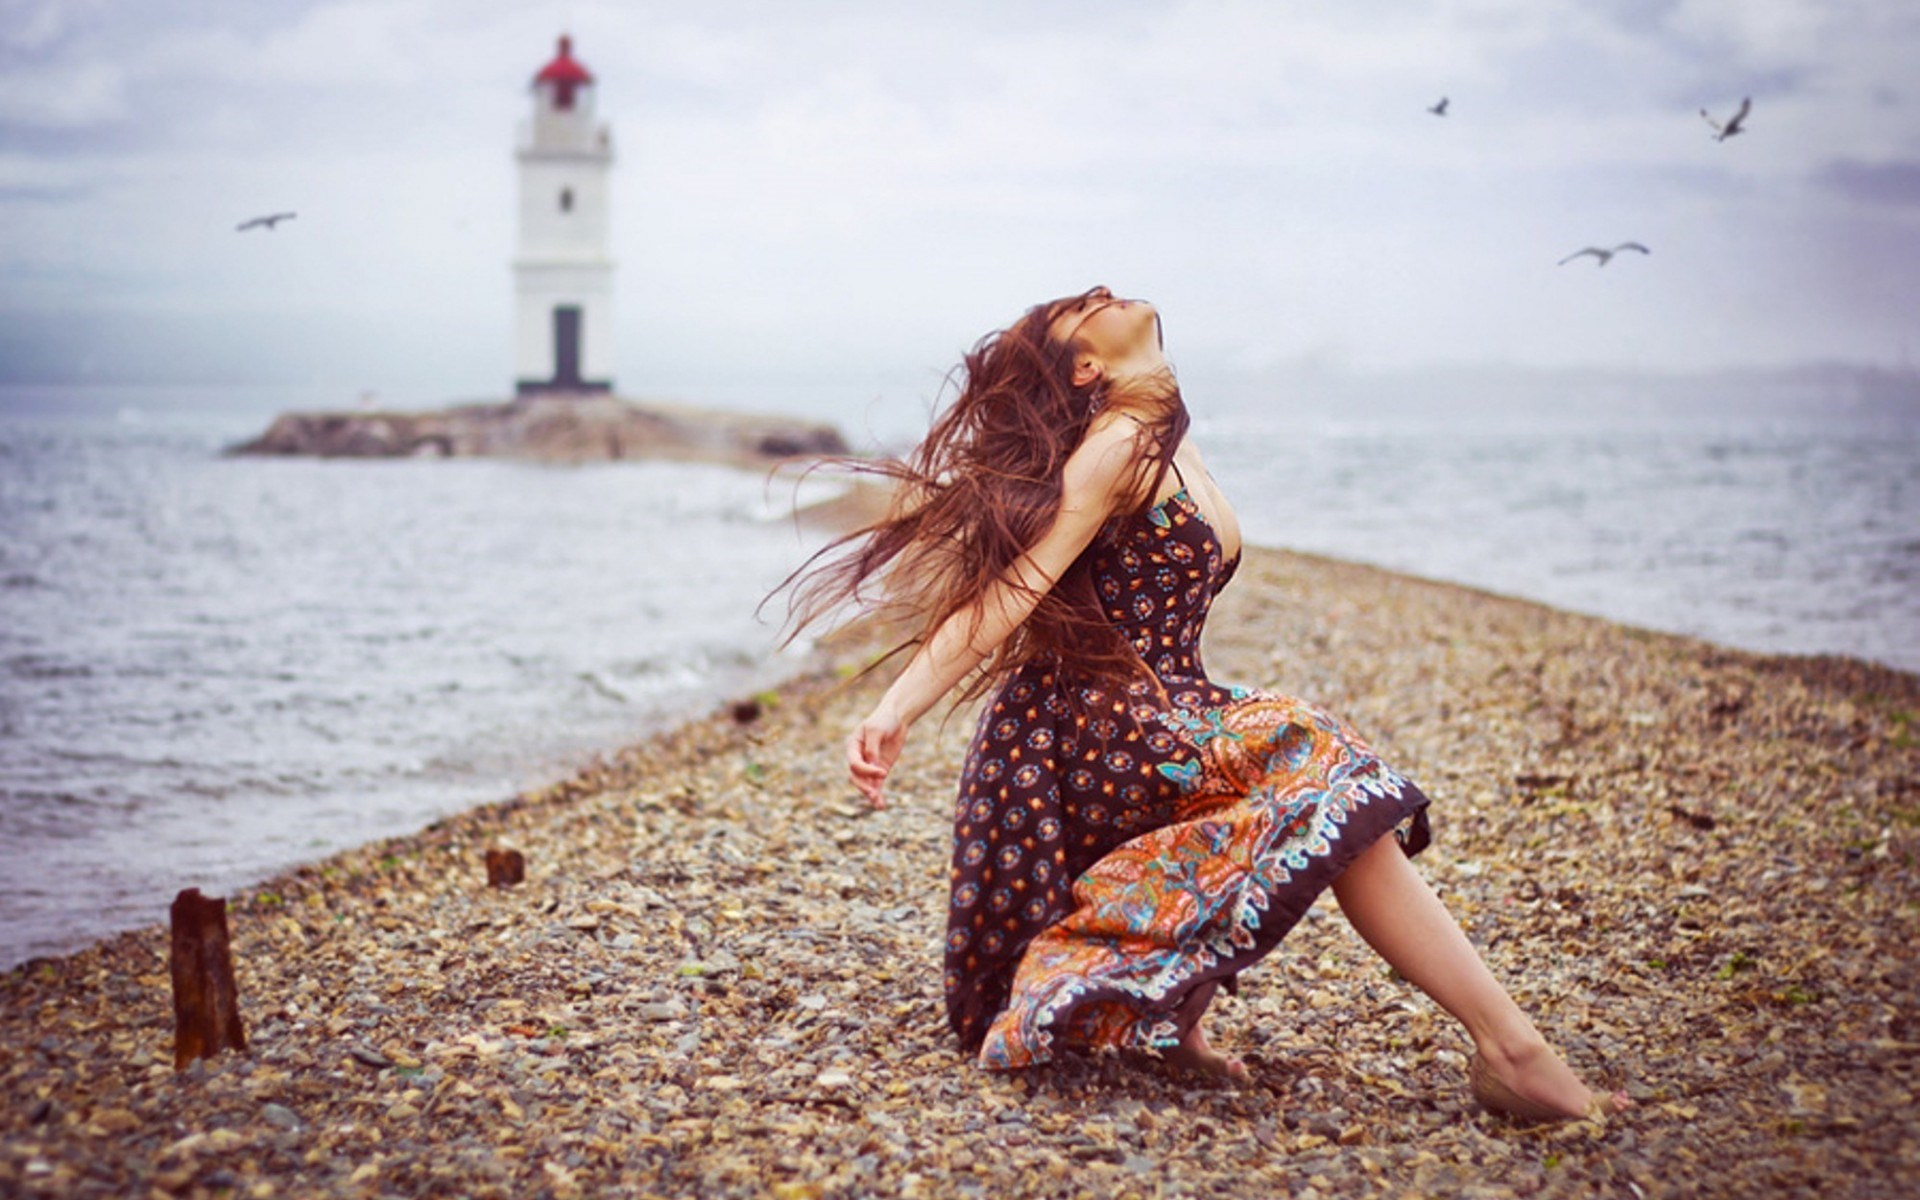 Mood The Lighthouse The Girl on The Beach Birds